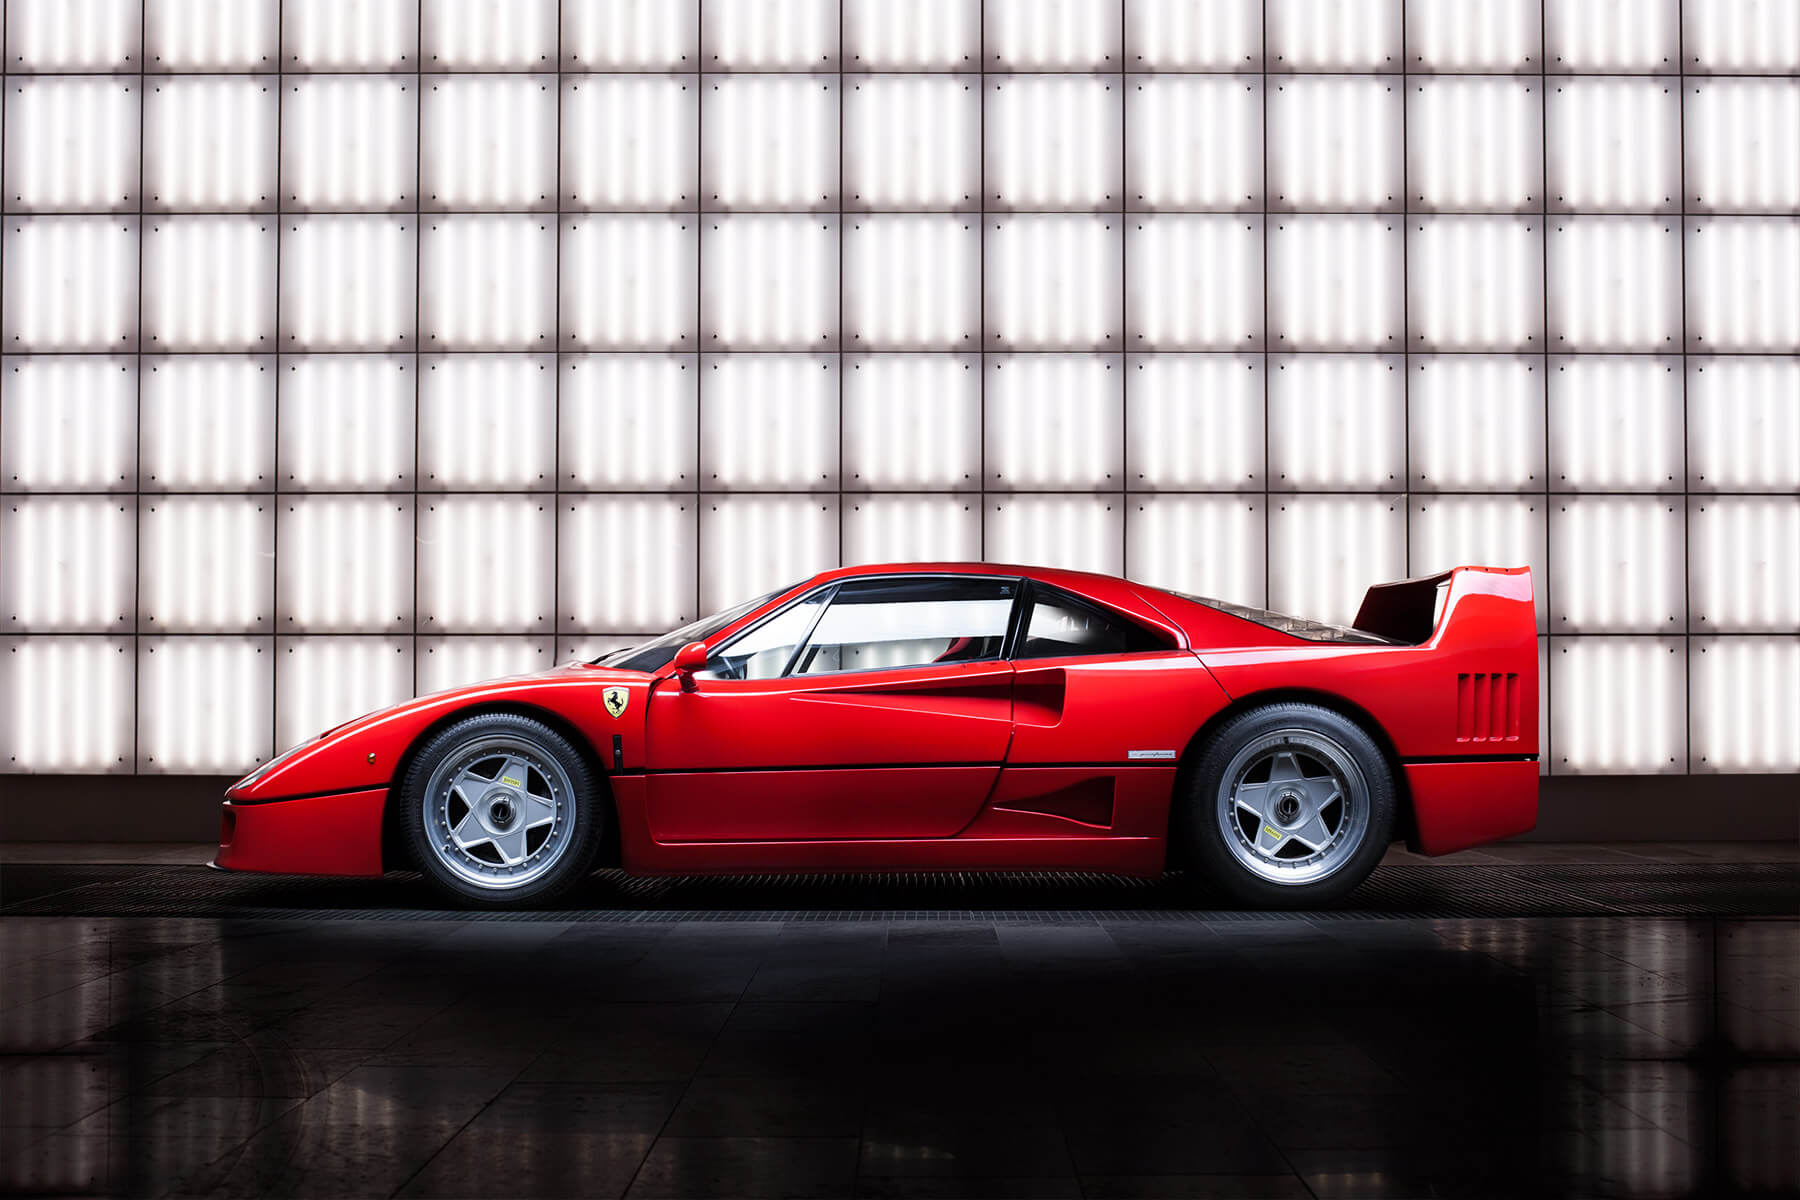 Studio shot of a Ferrari F40